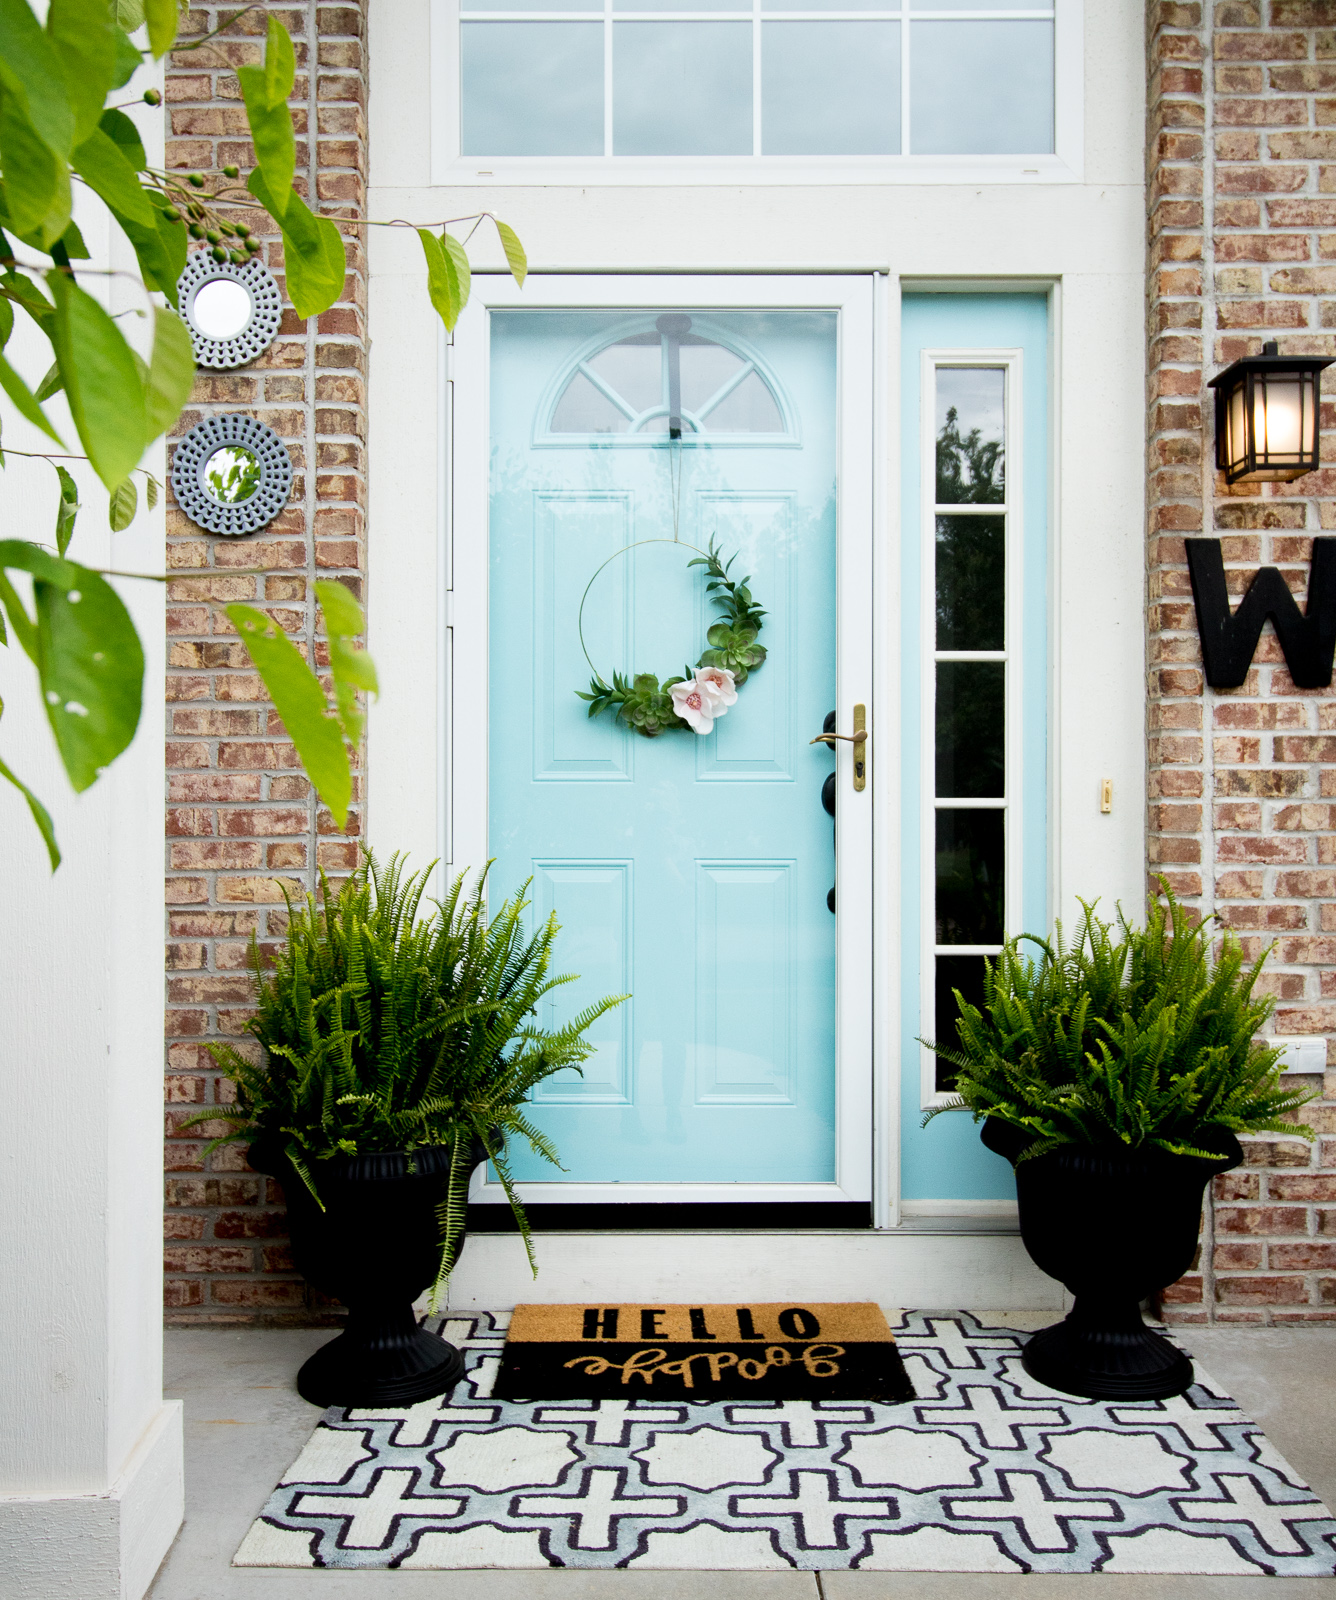 budget friendly ways to spruce up your front porch like painting your door, buying an outdoor rug, and a DIY gold hoop wreath